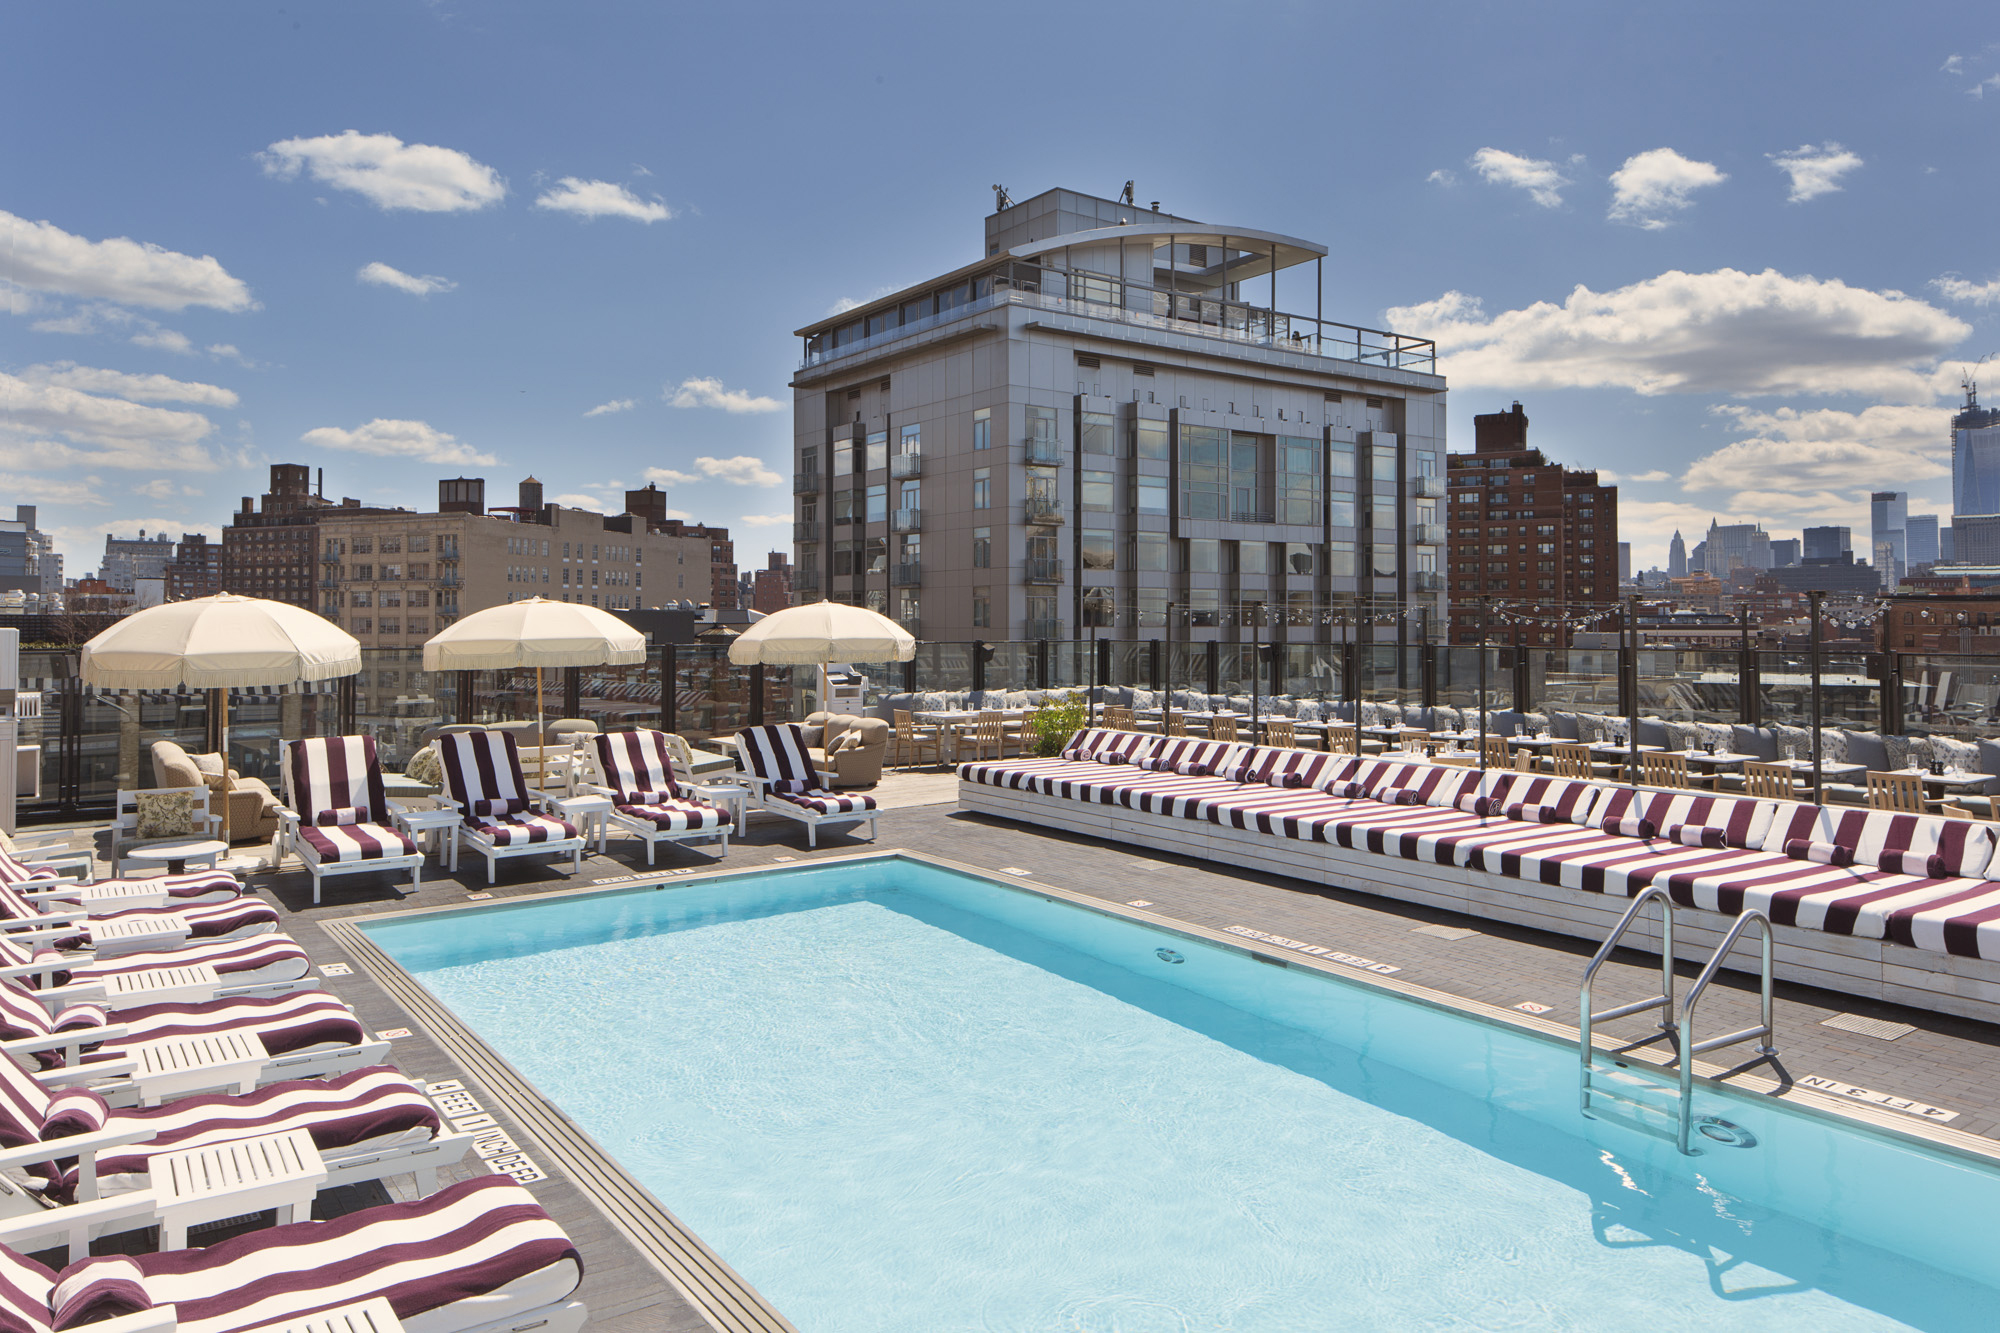 Outdoor Swimming Pool Berlin 10 Best Nyc Hotels With Jacuzzis In Room For A Relaxing Trip